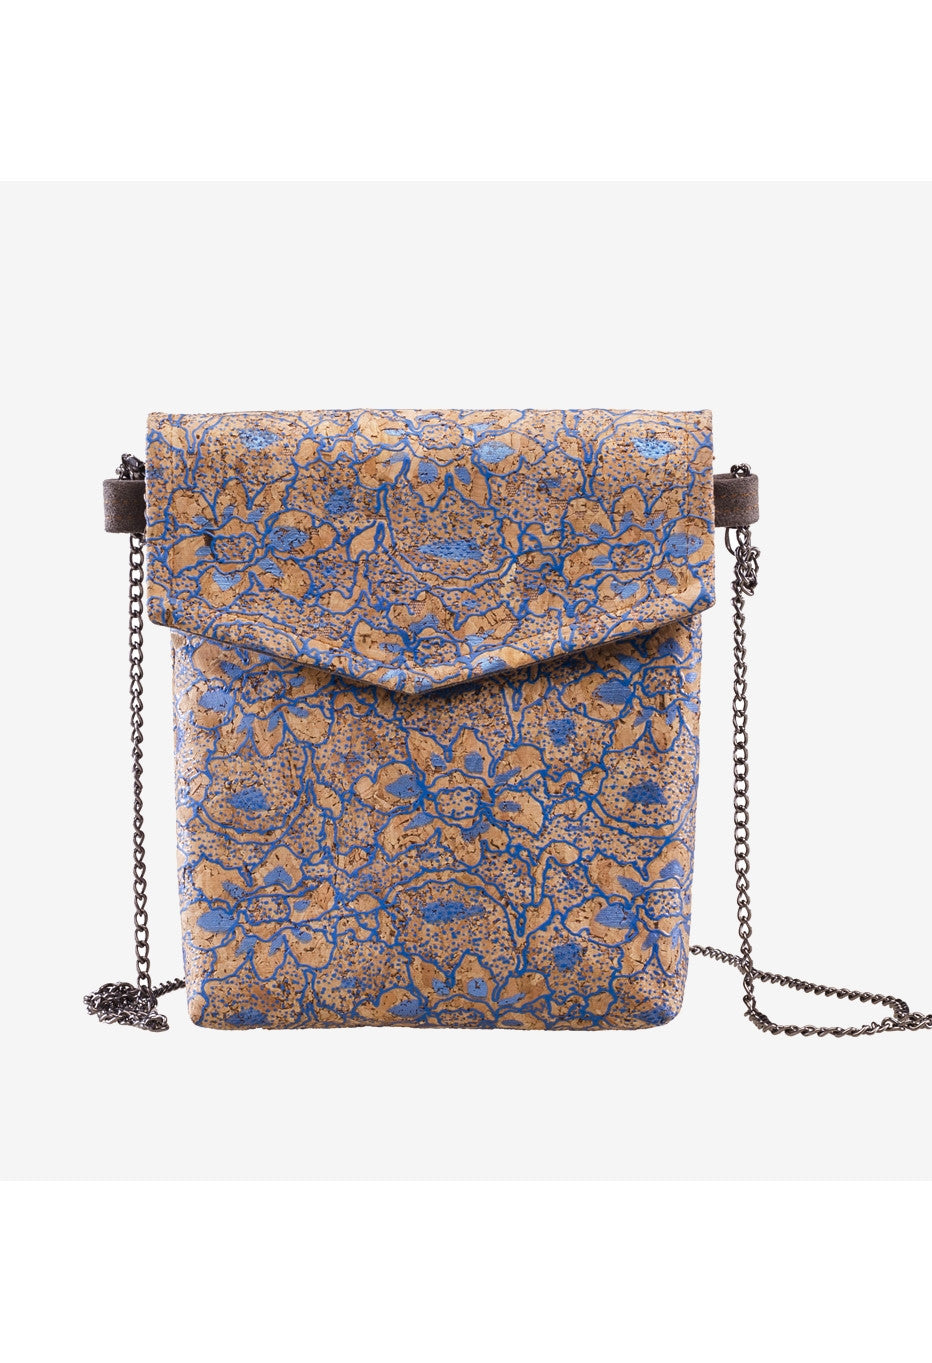 Natural 'Flora' Cork Wood Bag - Alison Sman - 1